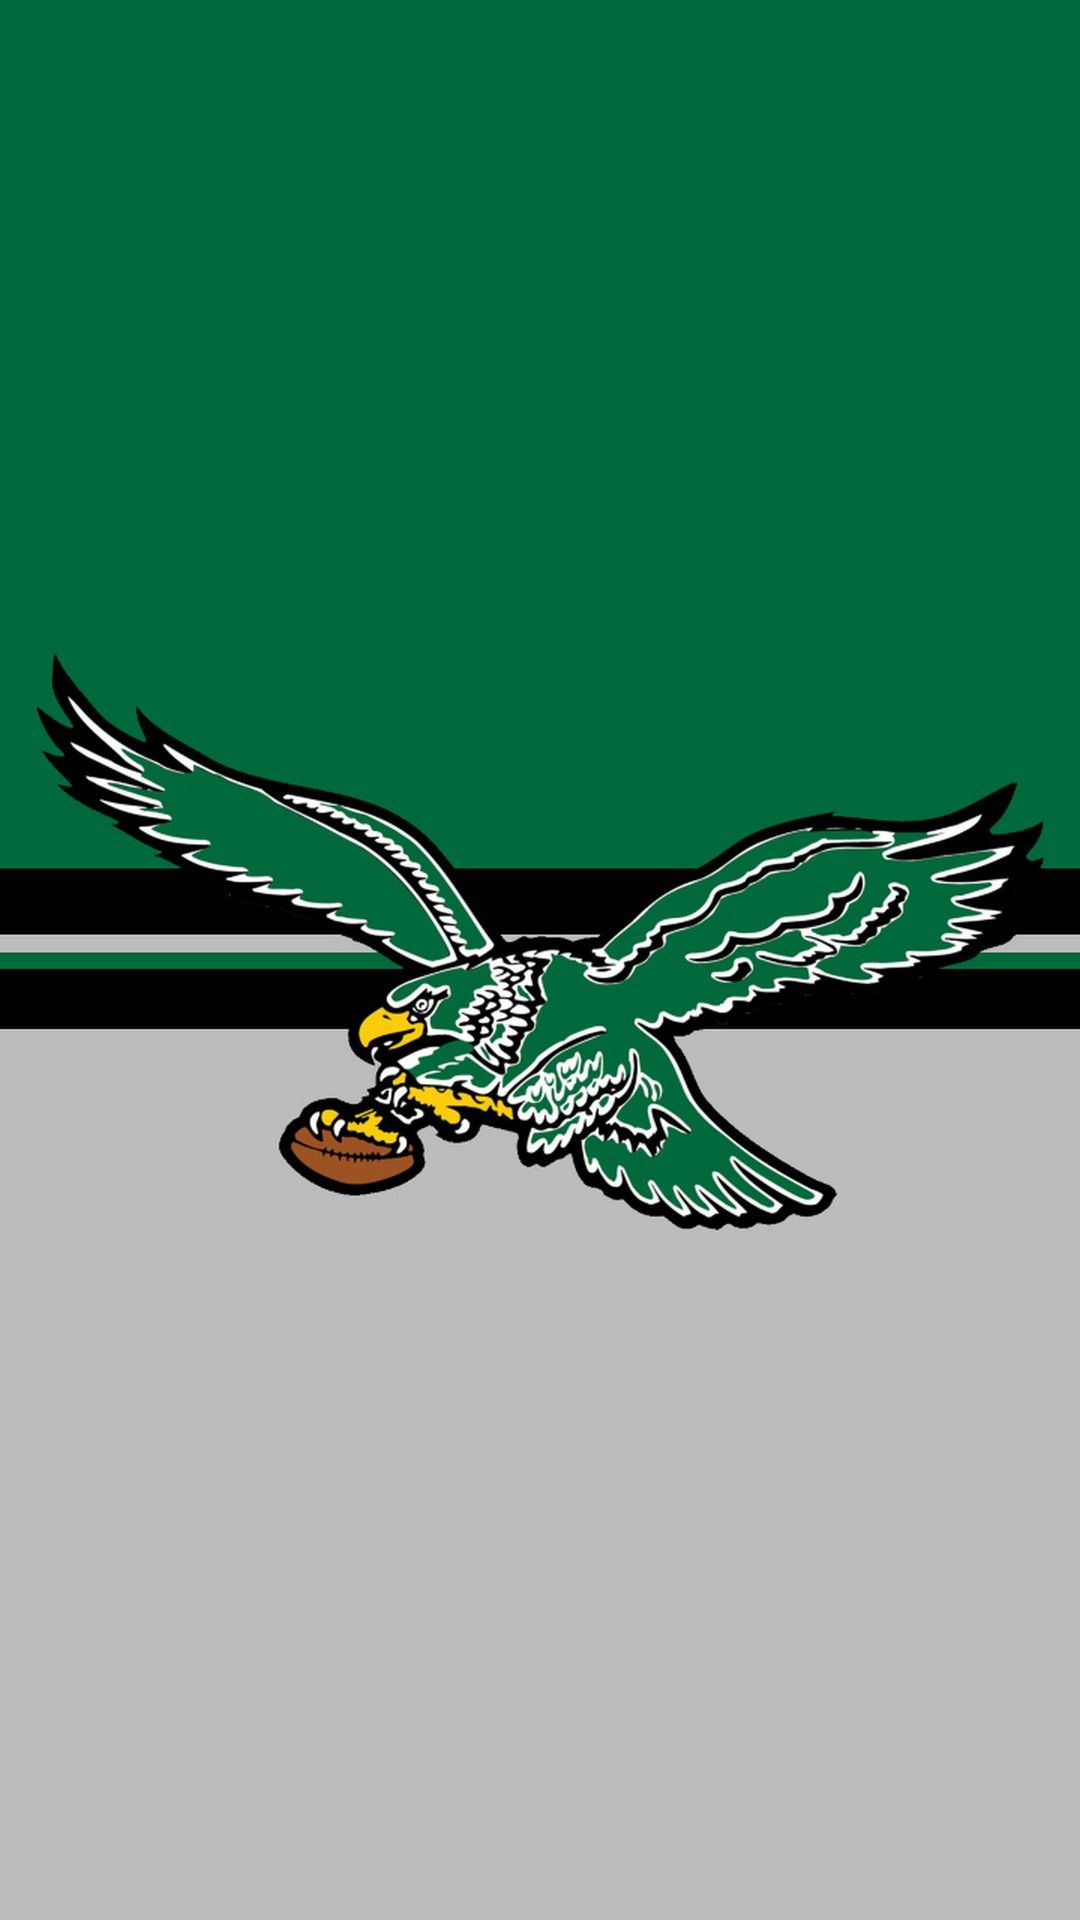 Eagles iPhone 7 Plus Wallpaper Iphone 7 plus wallpaper